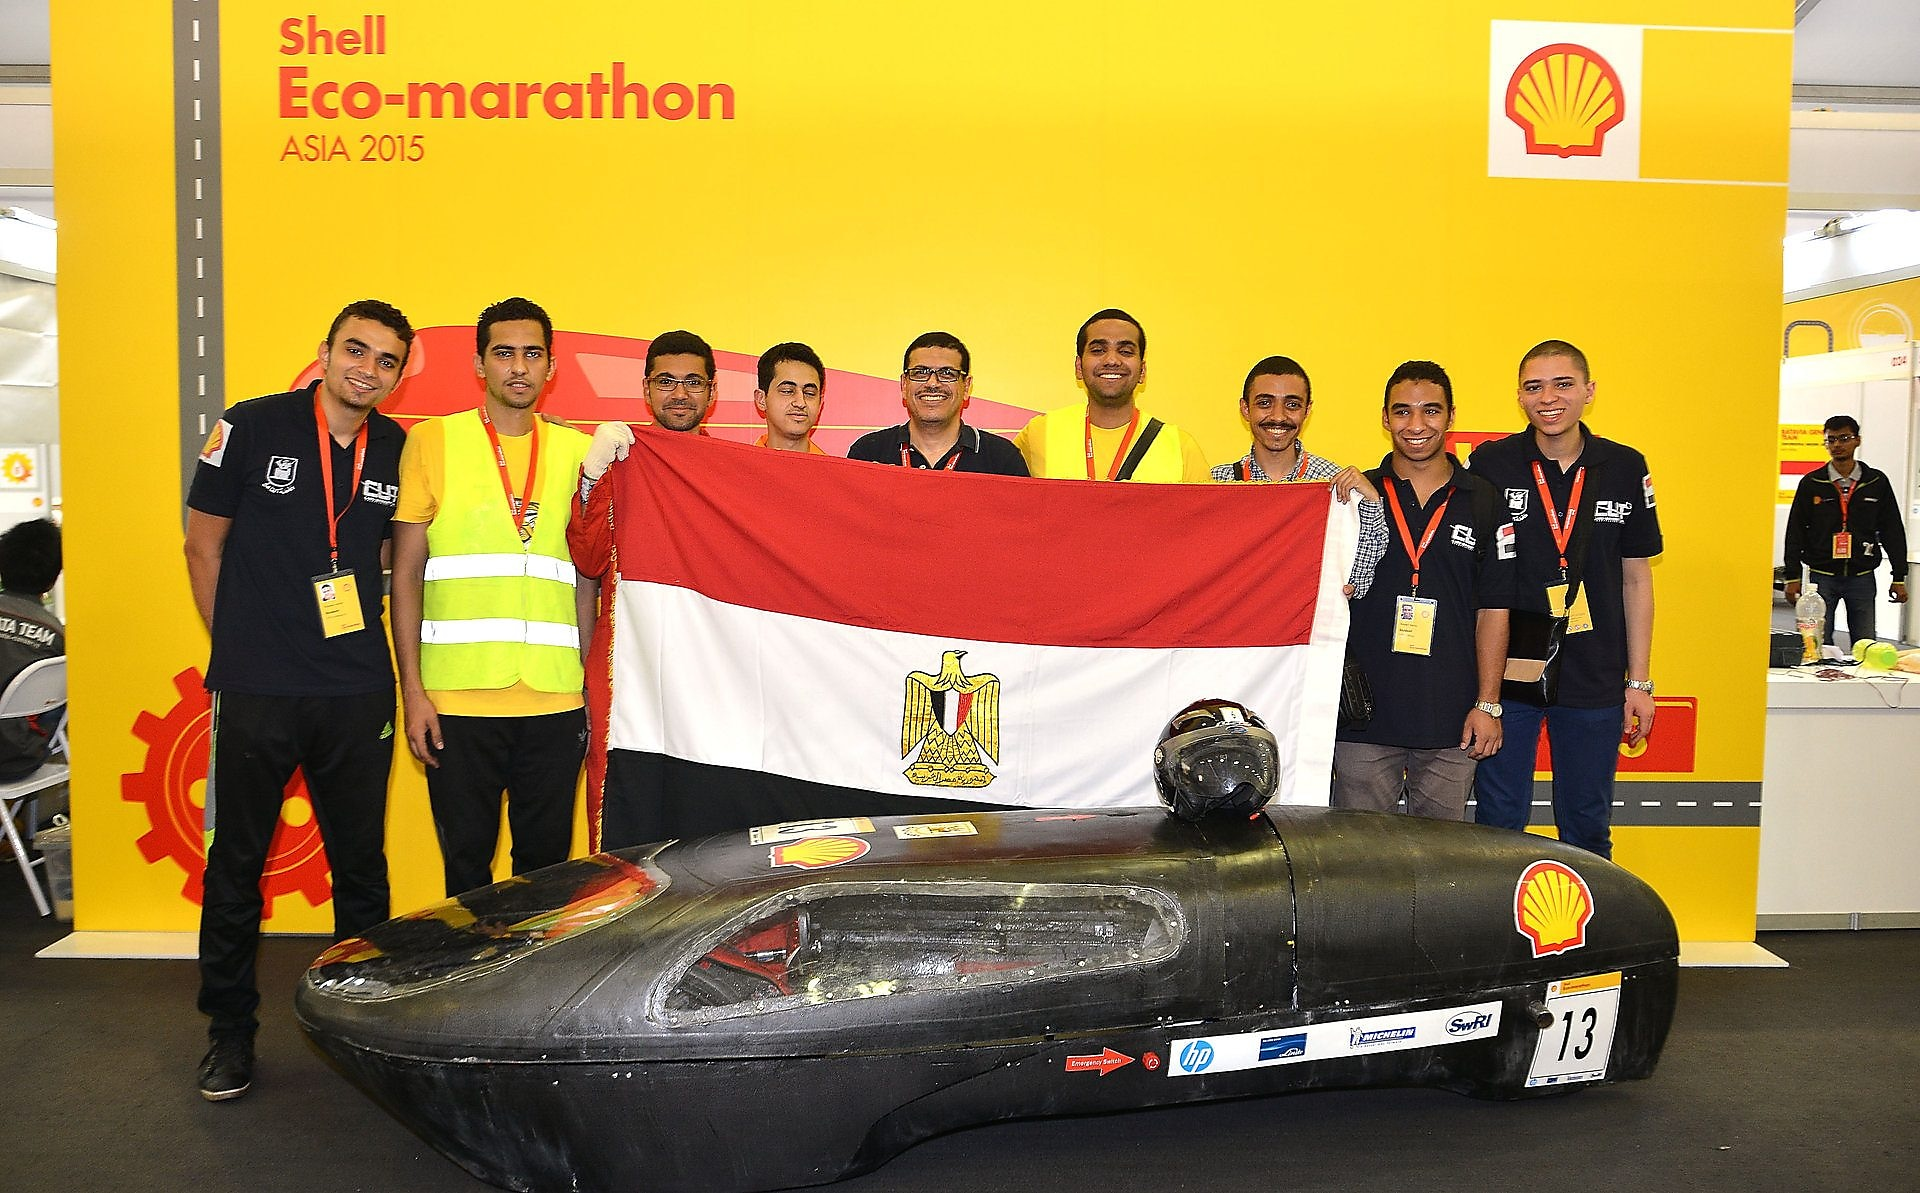 The Horus, #13, Prototype, competing for team CUT Eco-Racing from Cairo University Faculty of Engineering , Egypt poses for portrait during day two of the Shell Eco-marathon in Manila, Philippines, Friday, Feb. 27, 2015